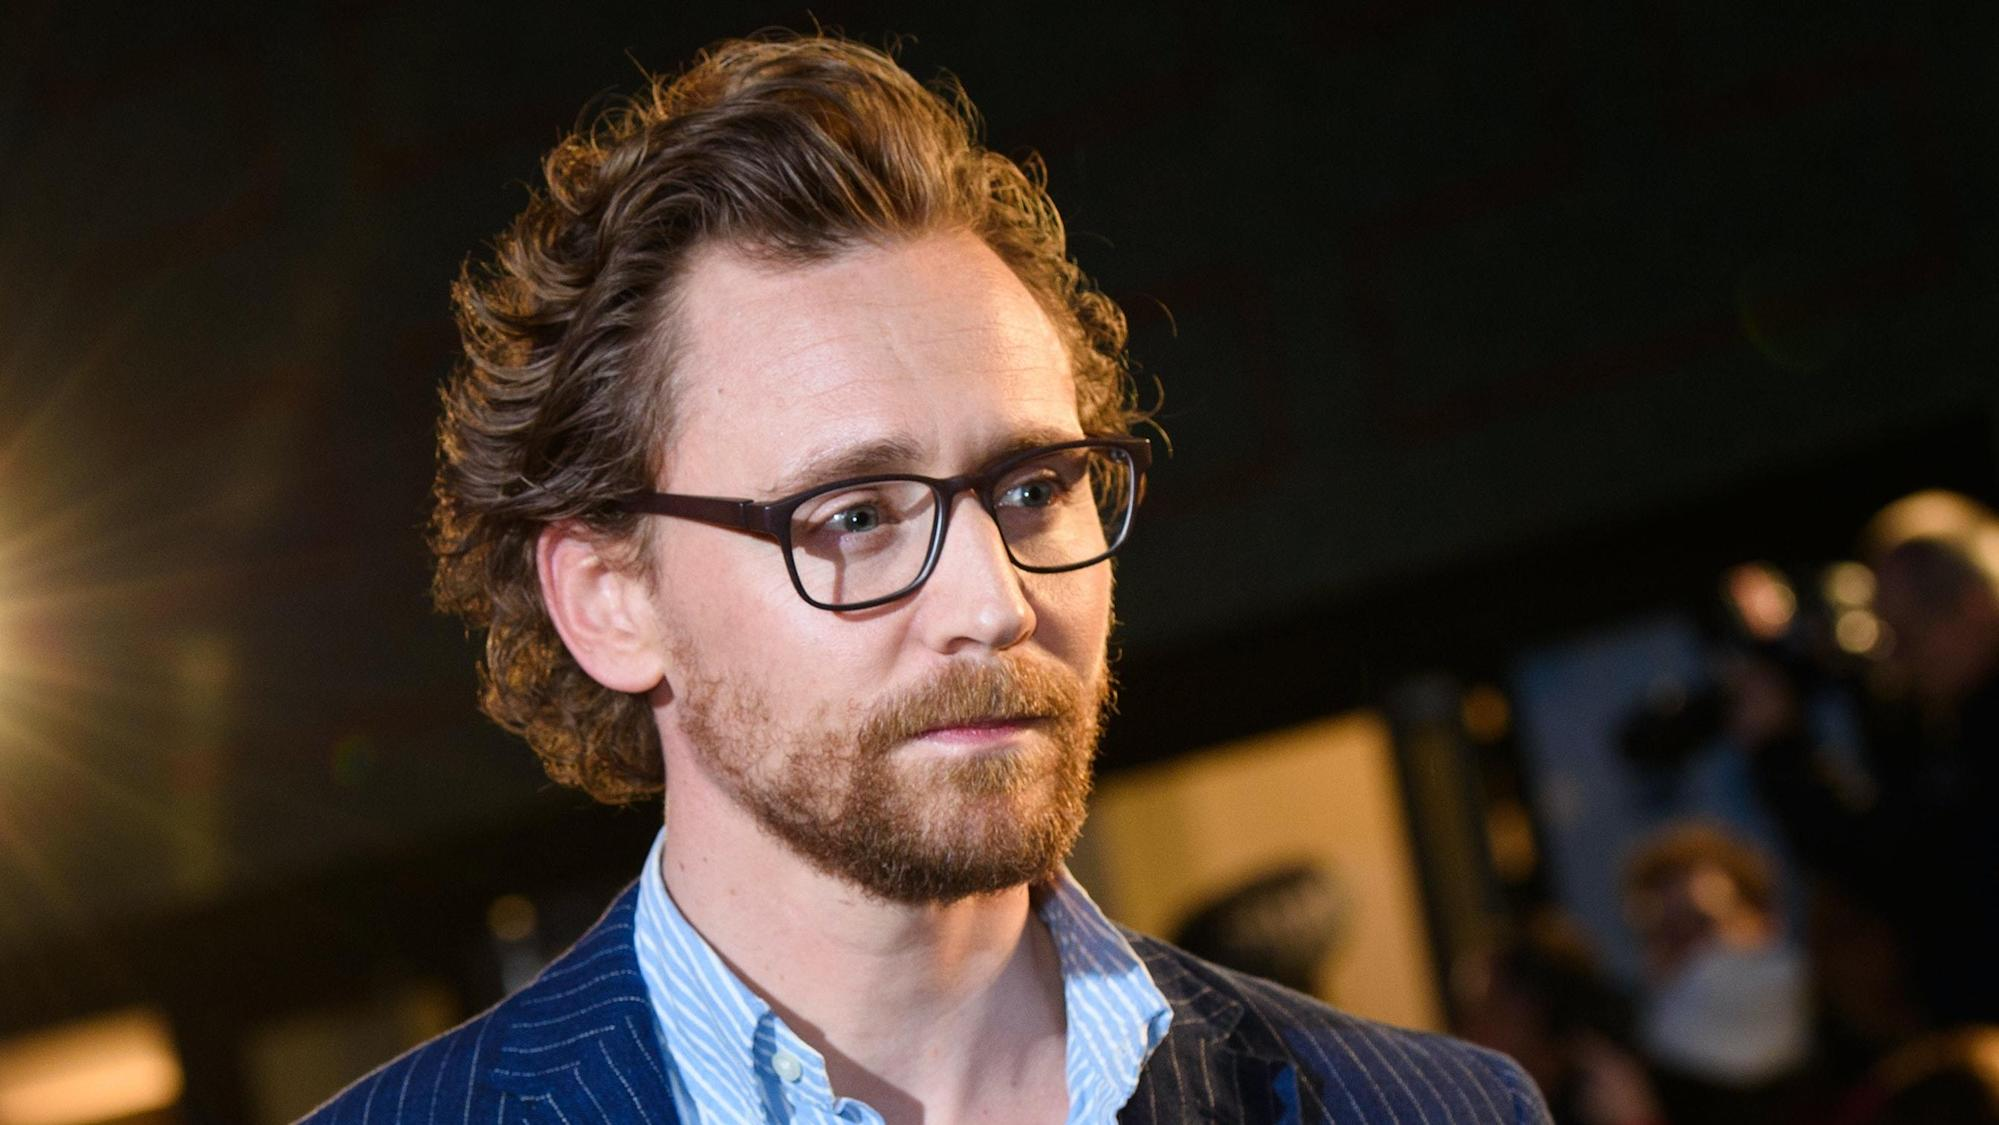 Tom Hiddleston narrates Apple TV+ documentary showing nocturnal lives of animals